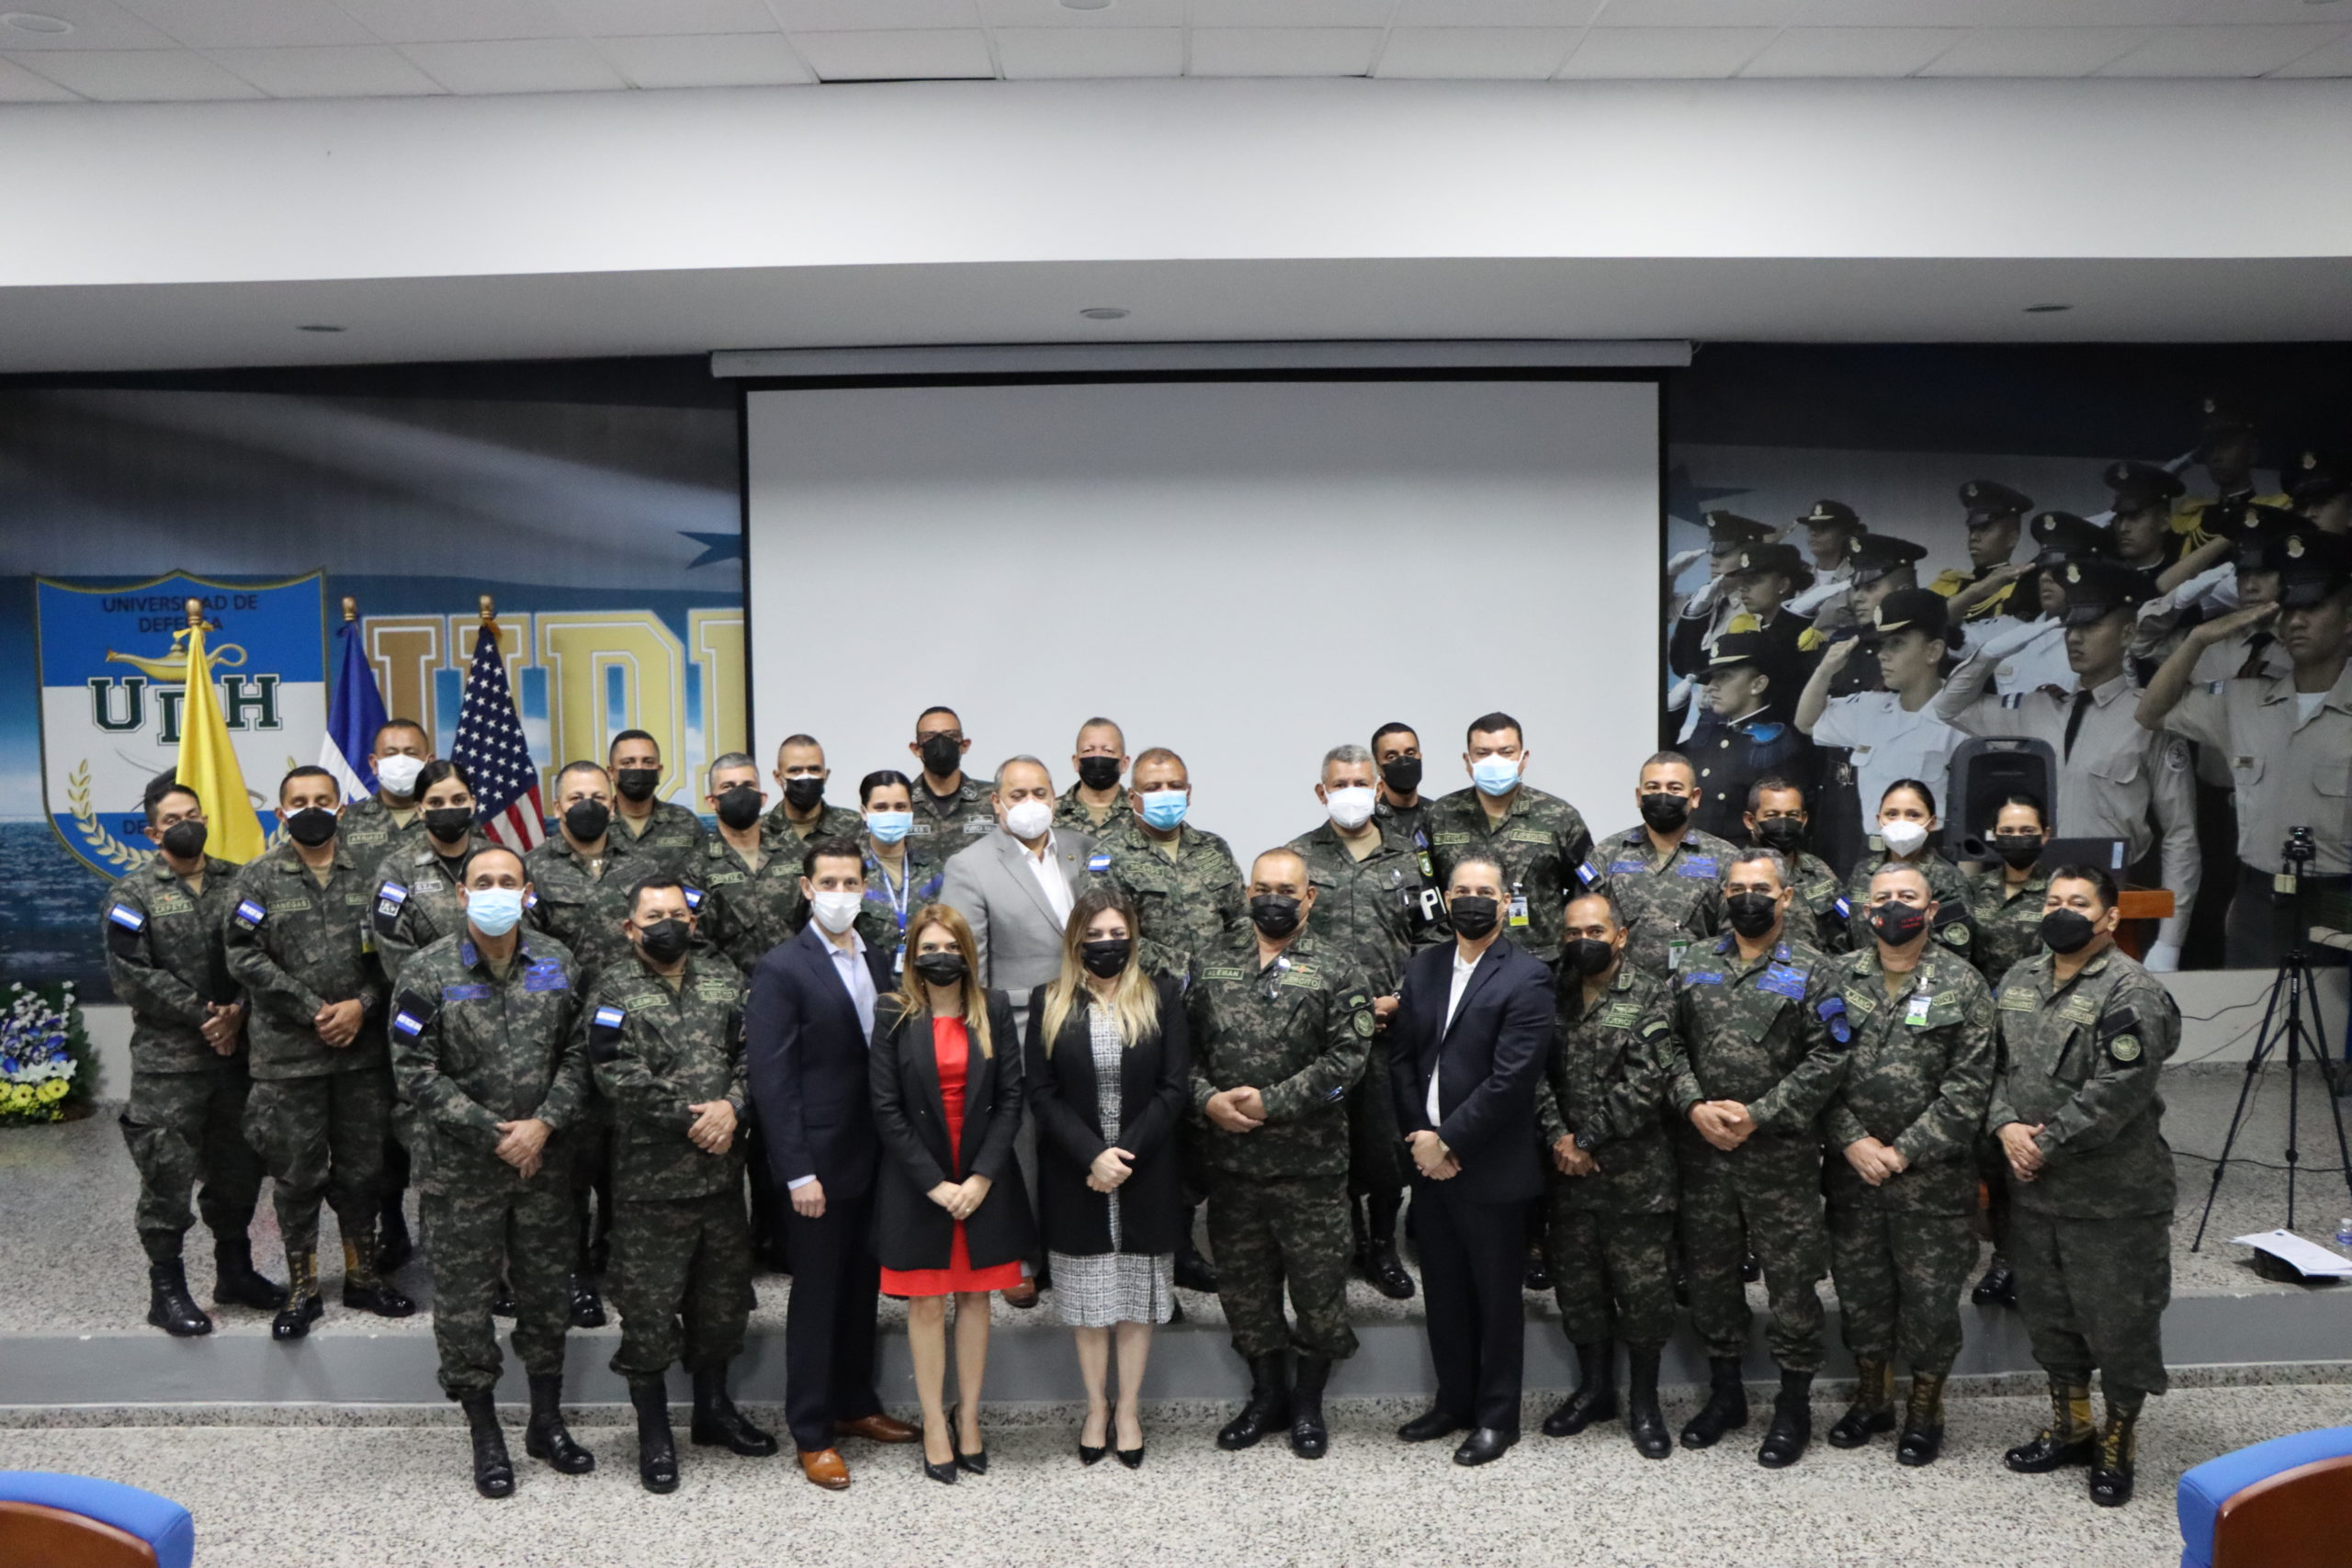 Honduran Armed Forces Make Progress on Human Rights Issues